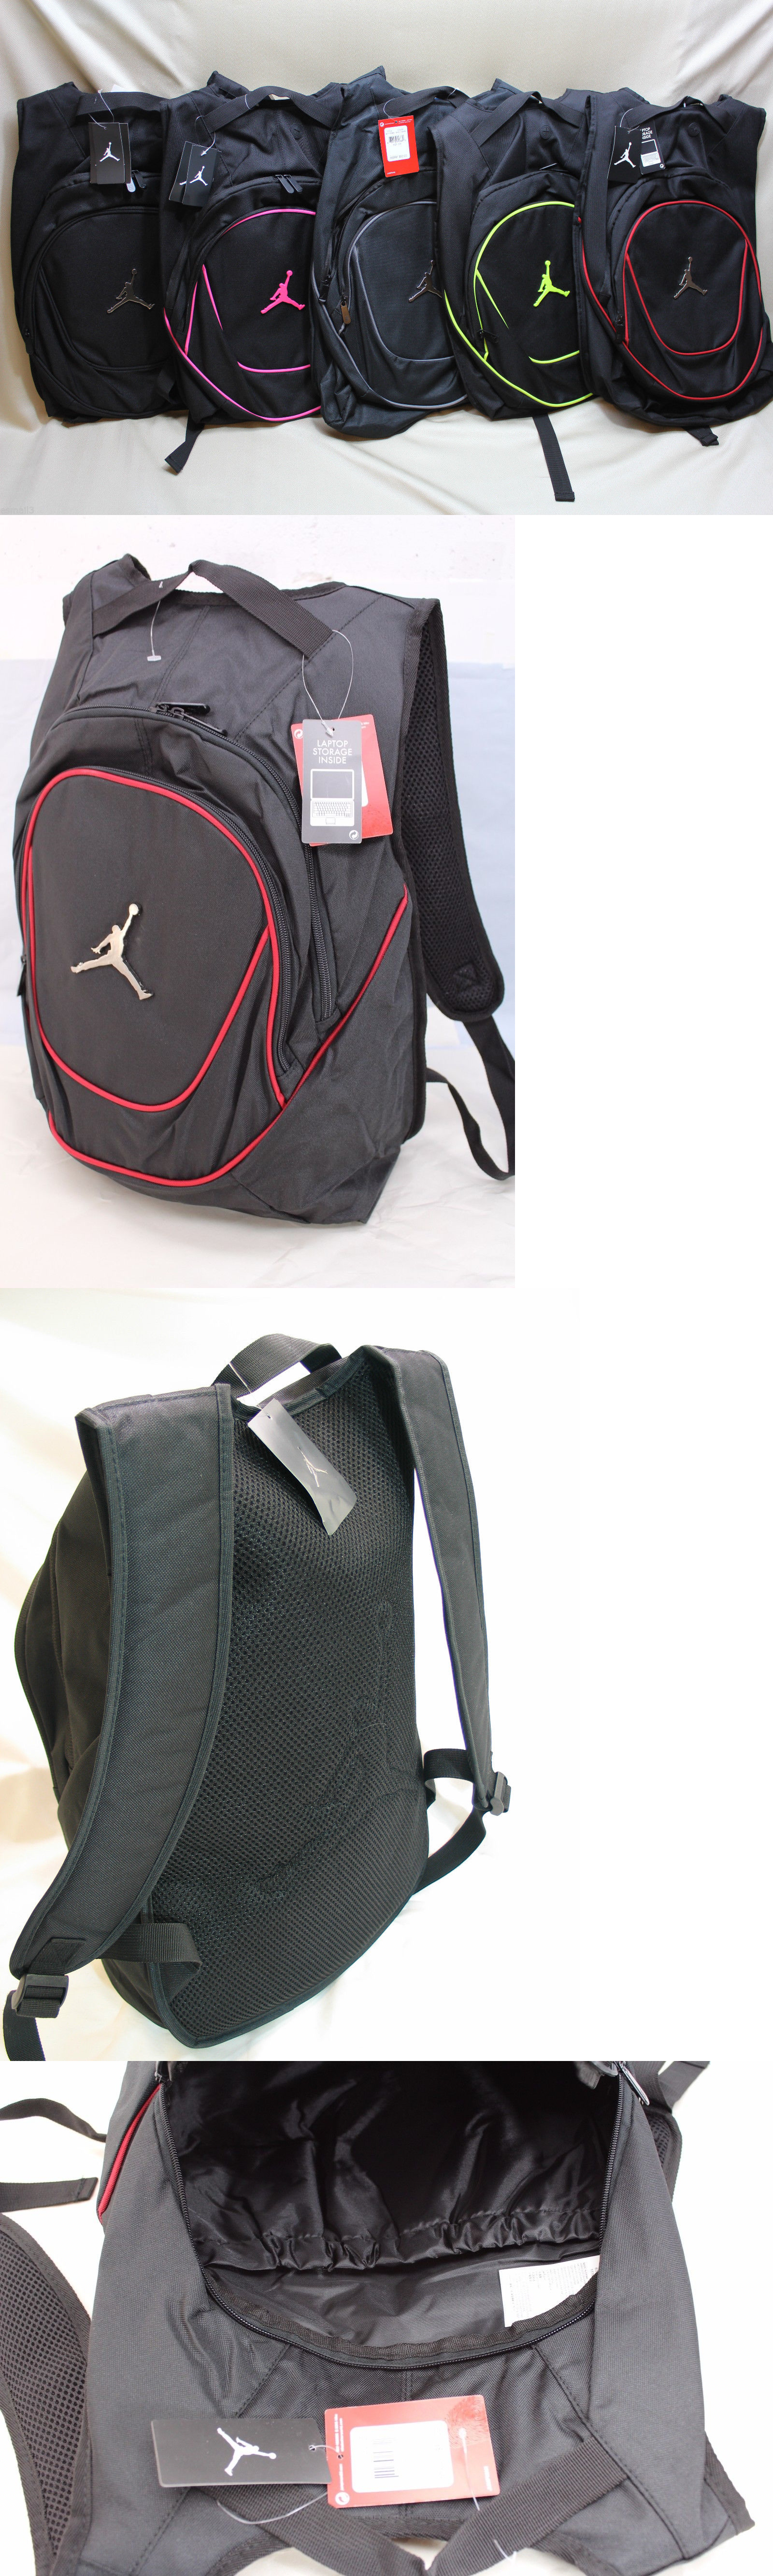 816e1fe96b5 Bags and Backpacks 163537: Nike Air Jordan Jumpman Laptop School Gym Hiking  Daypack Backpack Variations -> BUY IT NOW ONLY: $40.95 on eBay!